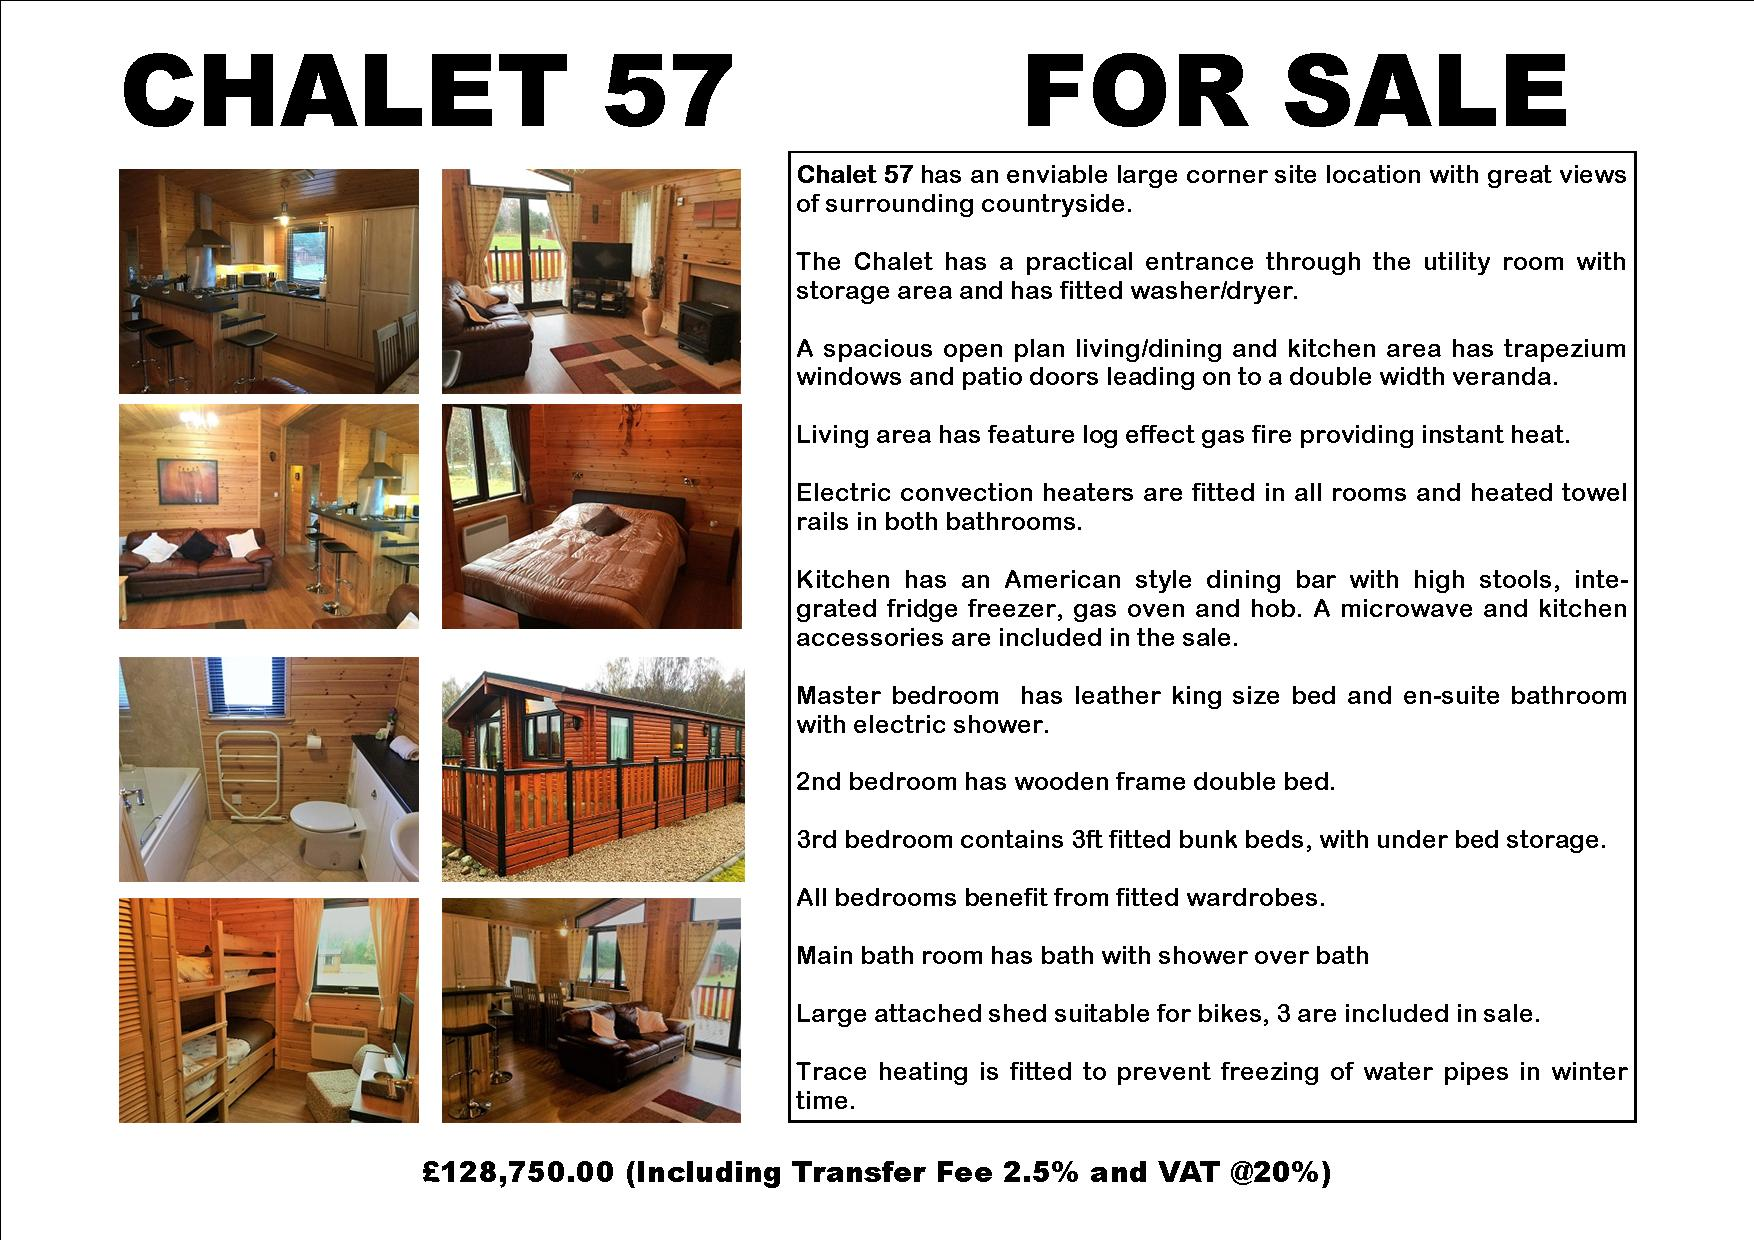 CHALET 57 FOR SALE